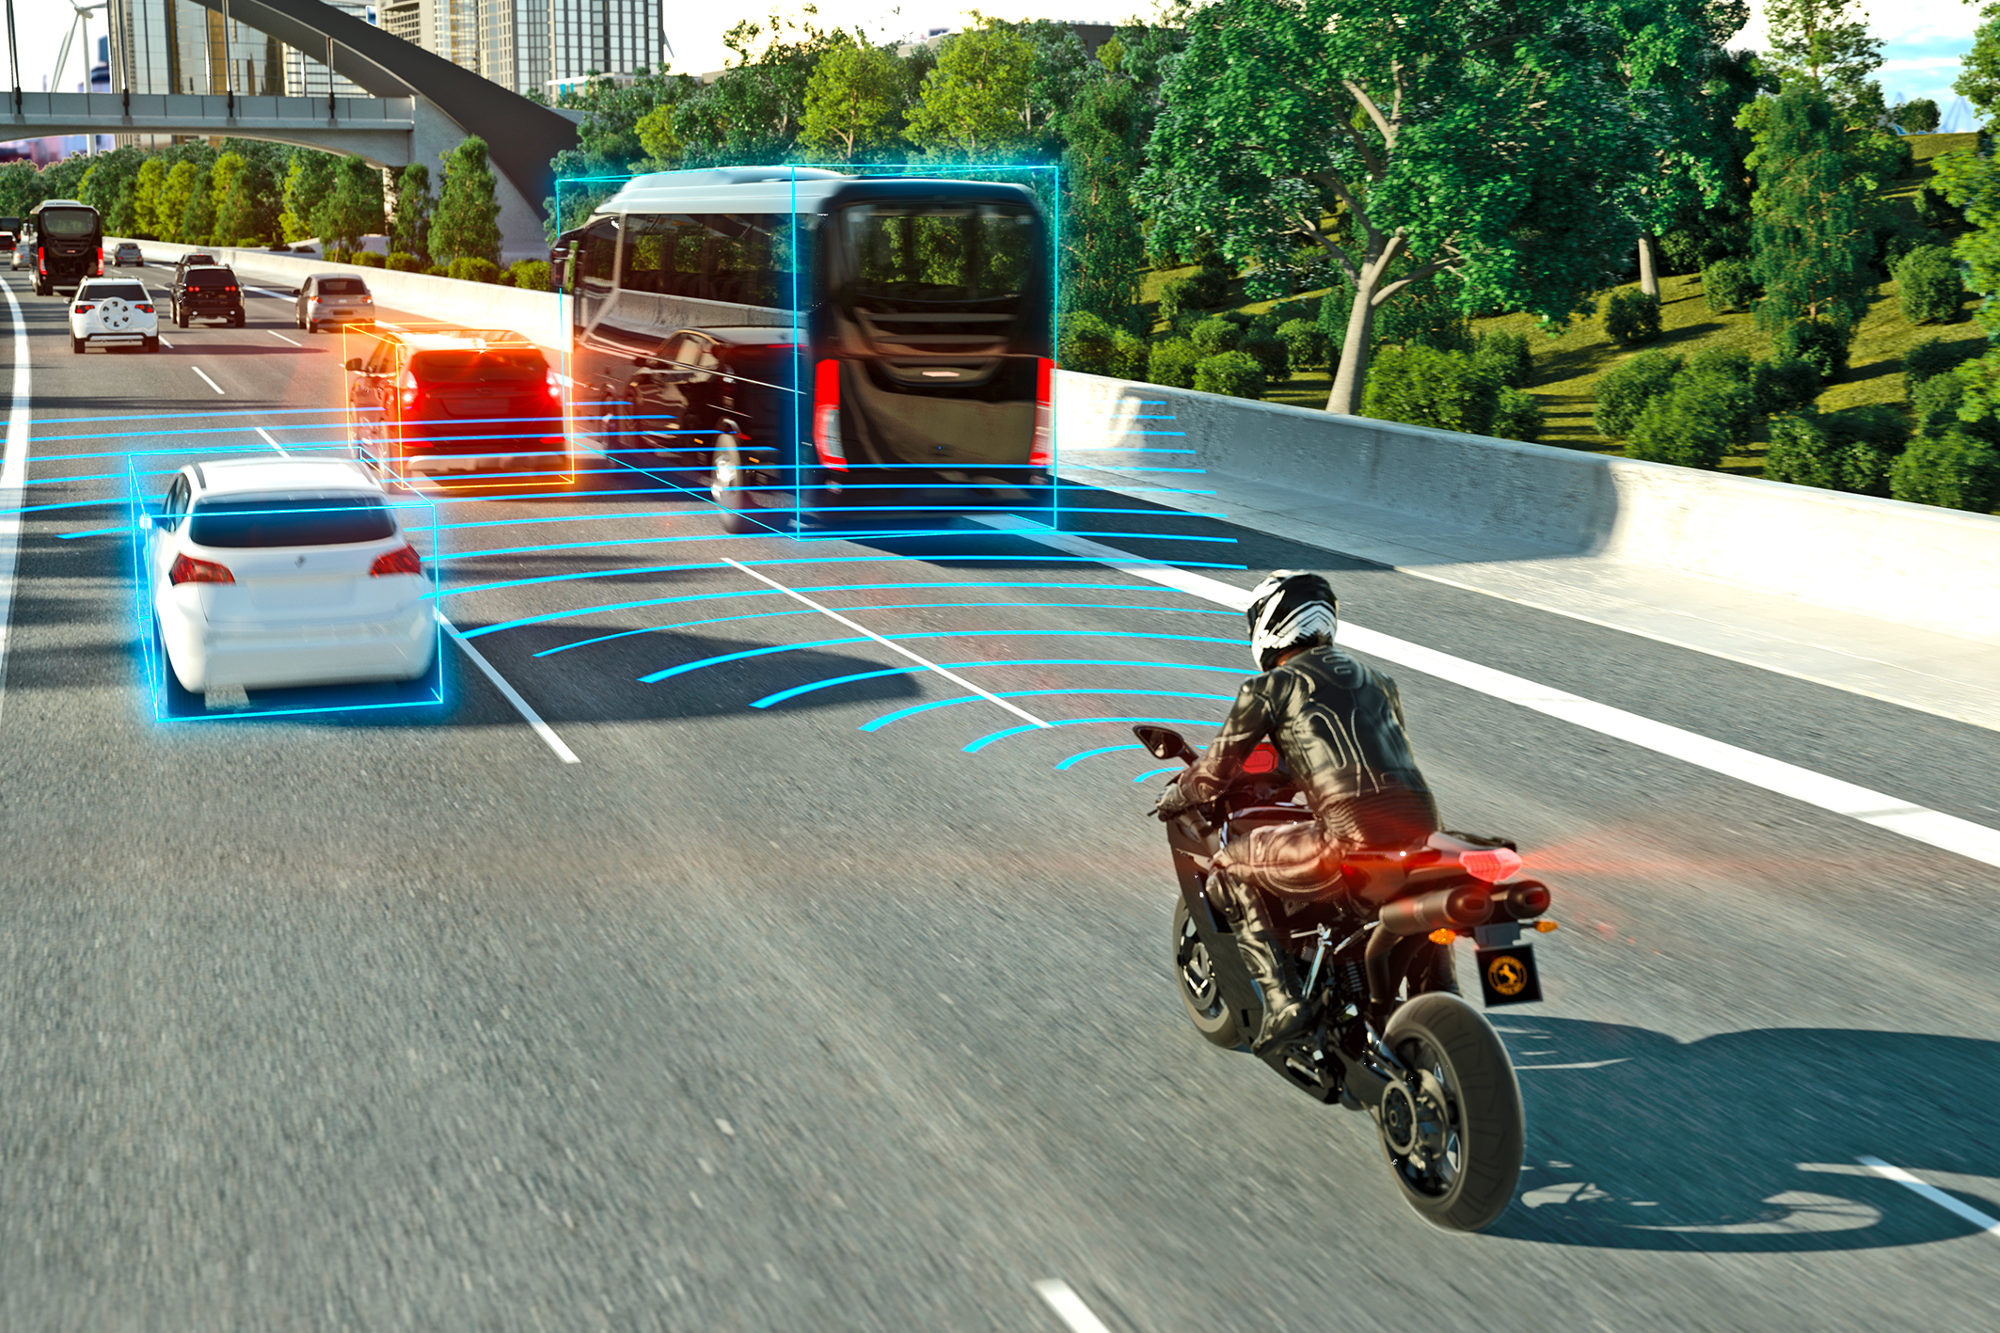 Innocvation moto : Continental Adaptive cruise control